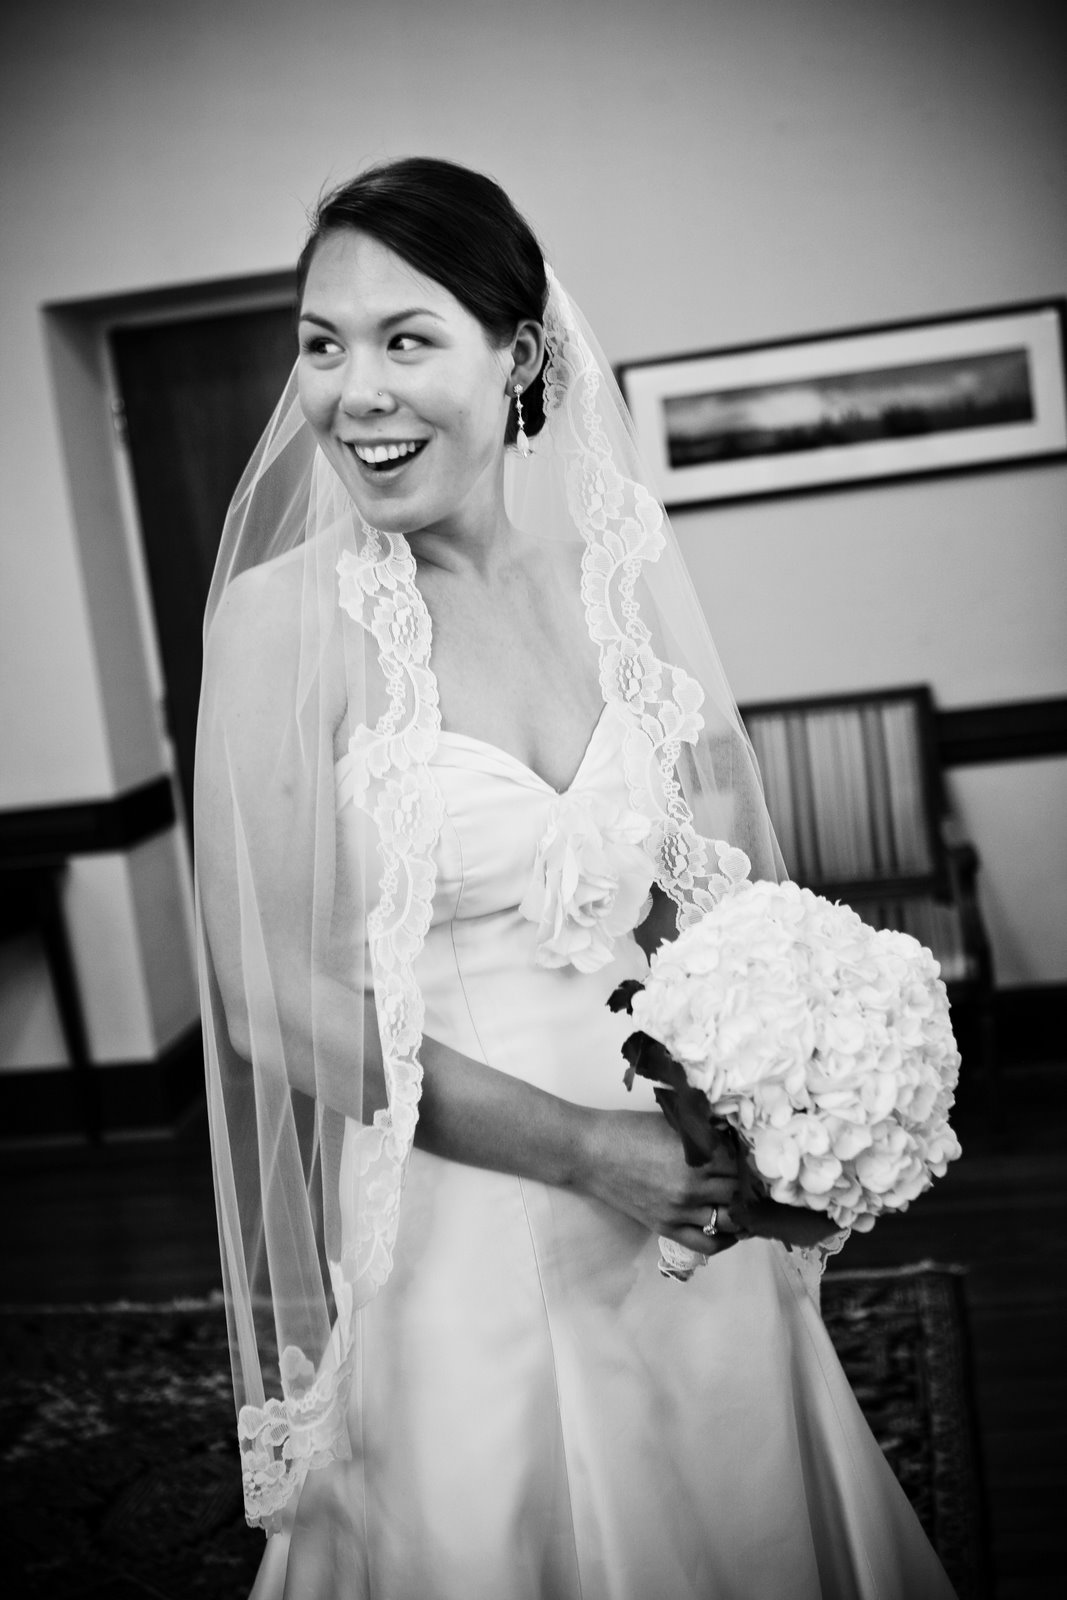 bride-with-flowers.jpg